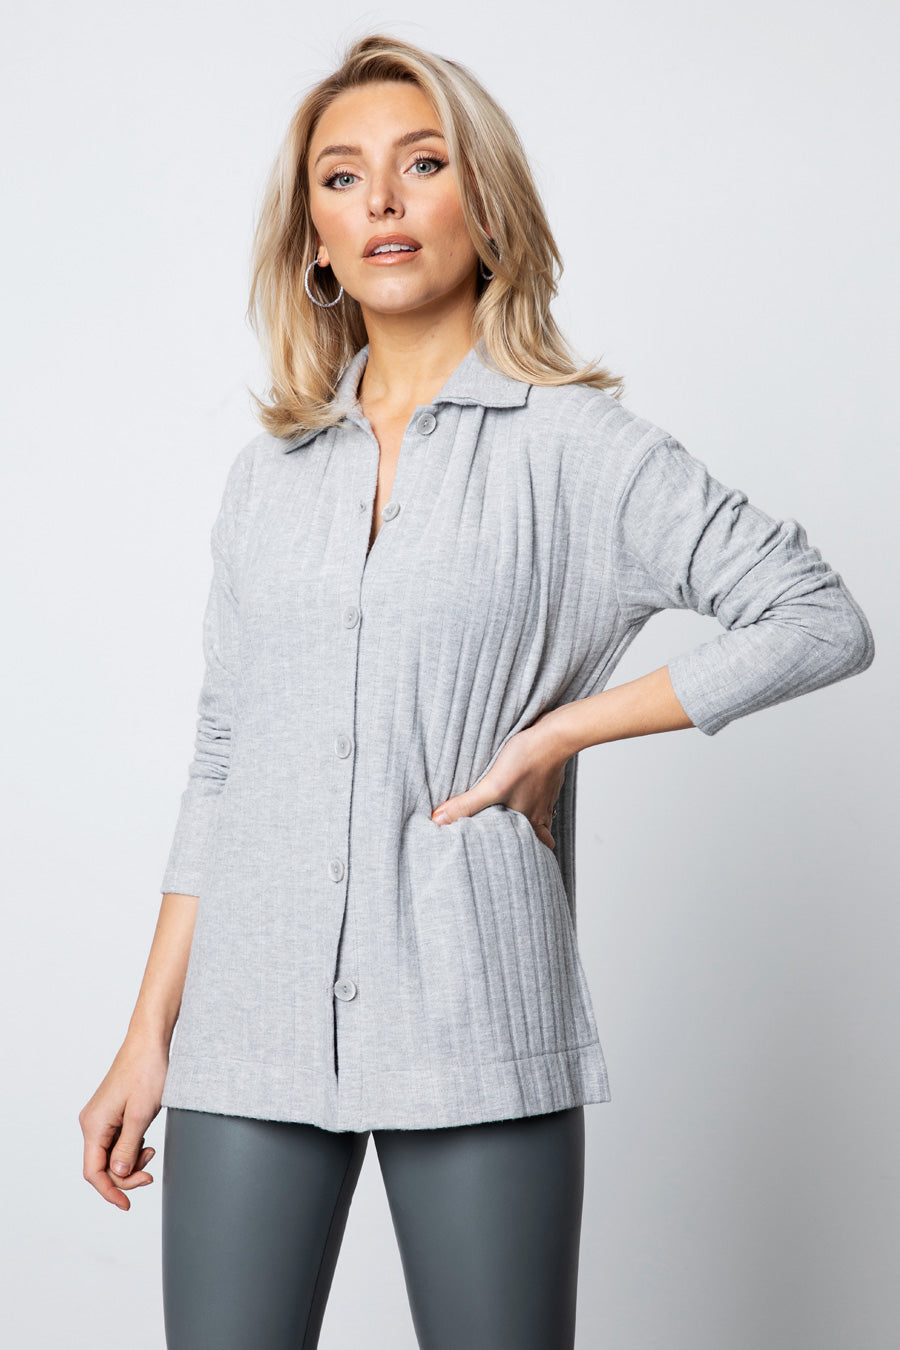 Ribbed Button Down Shirt - Solid Grey